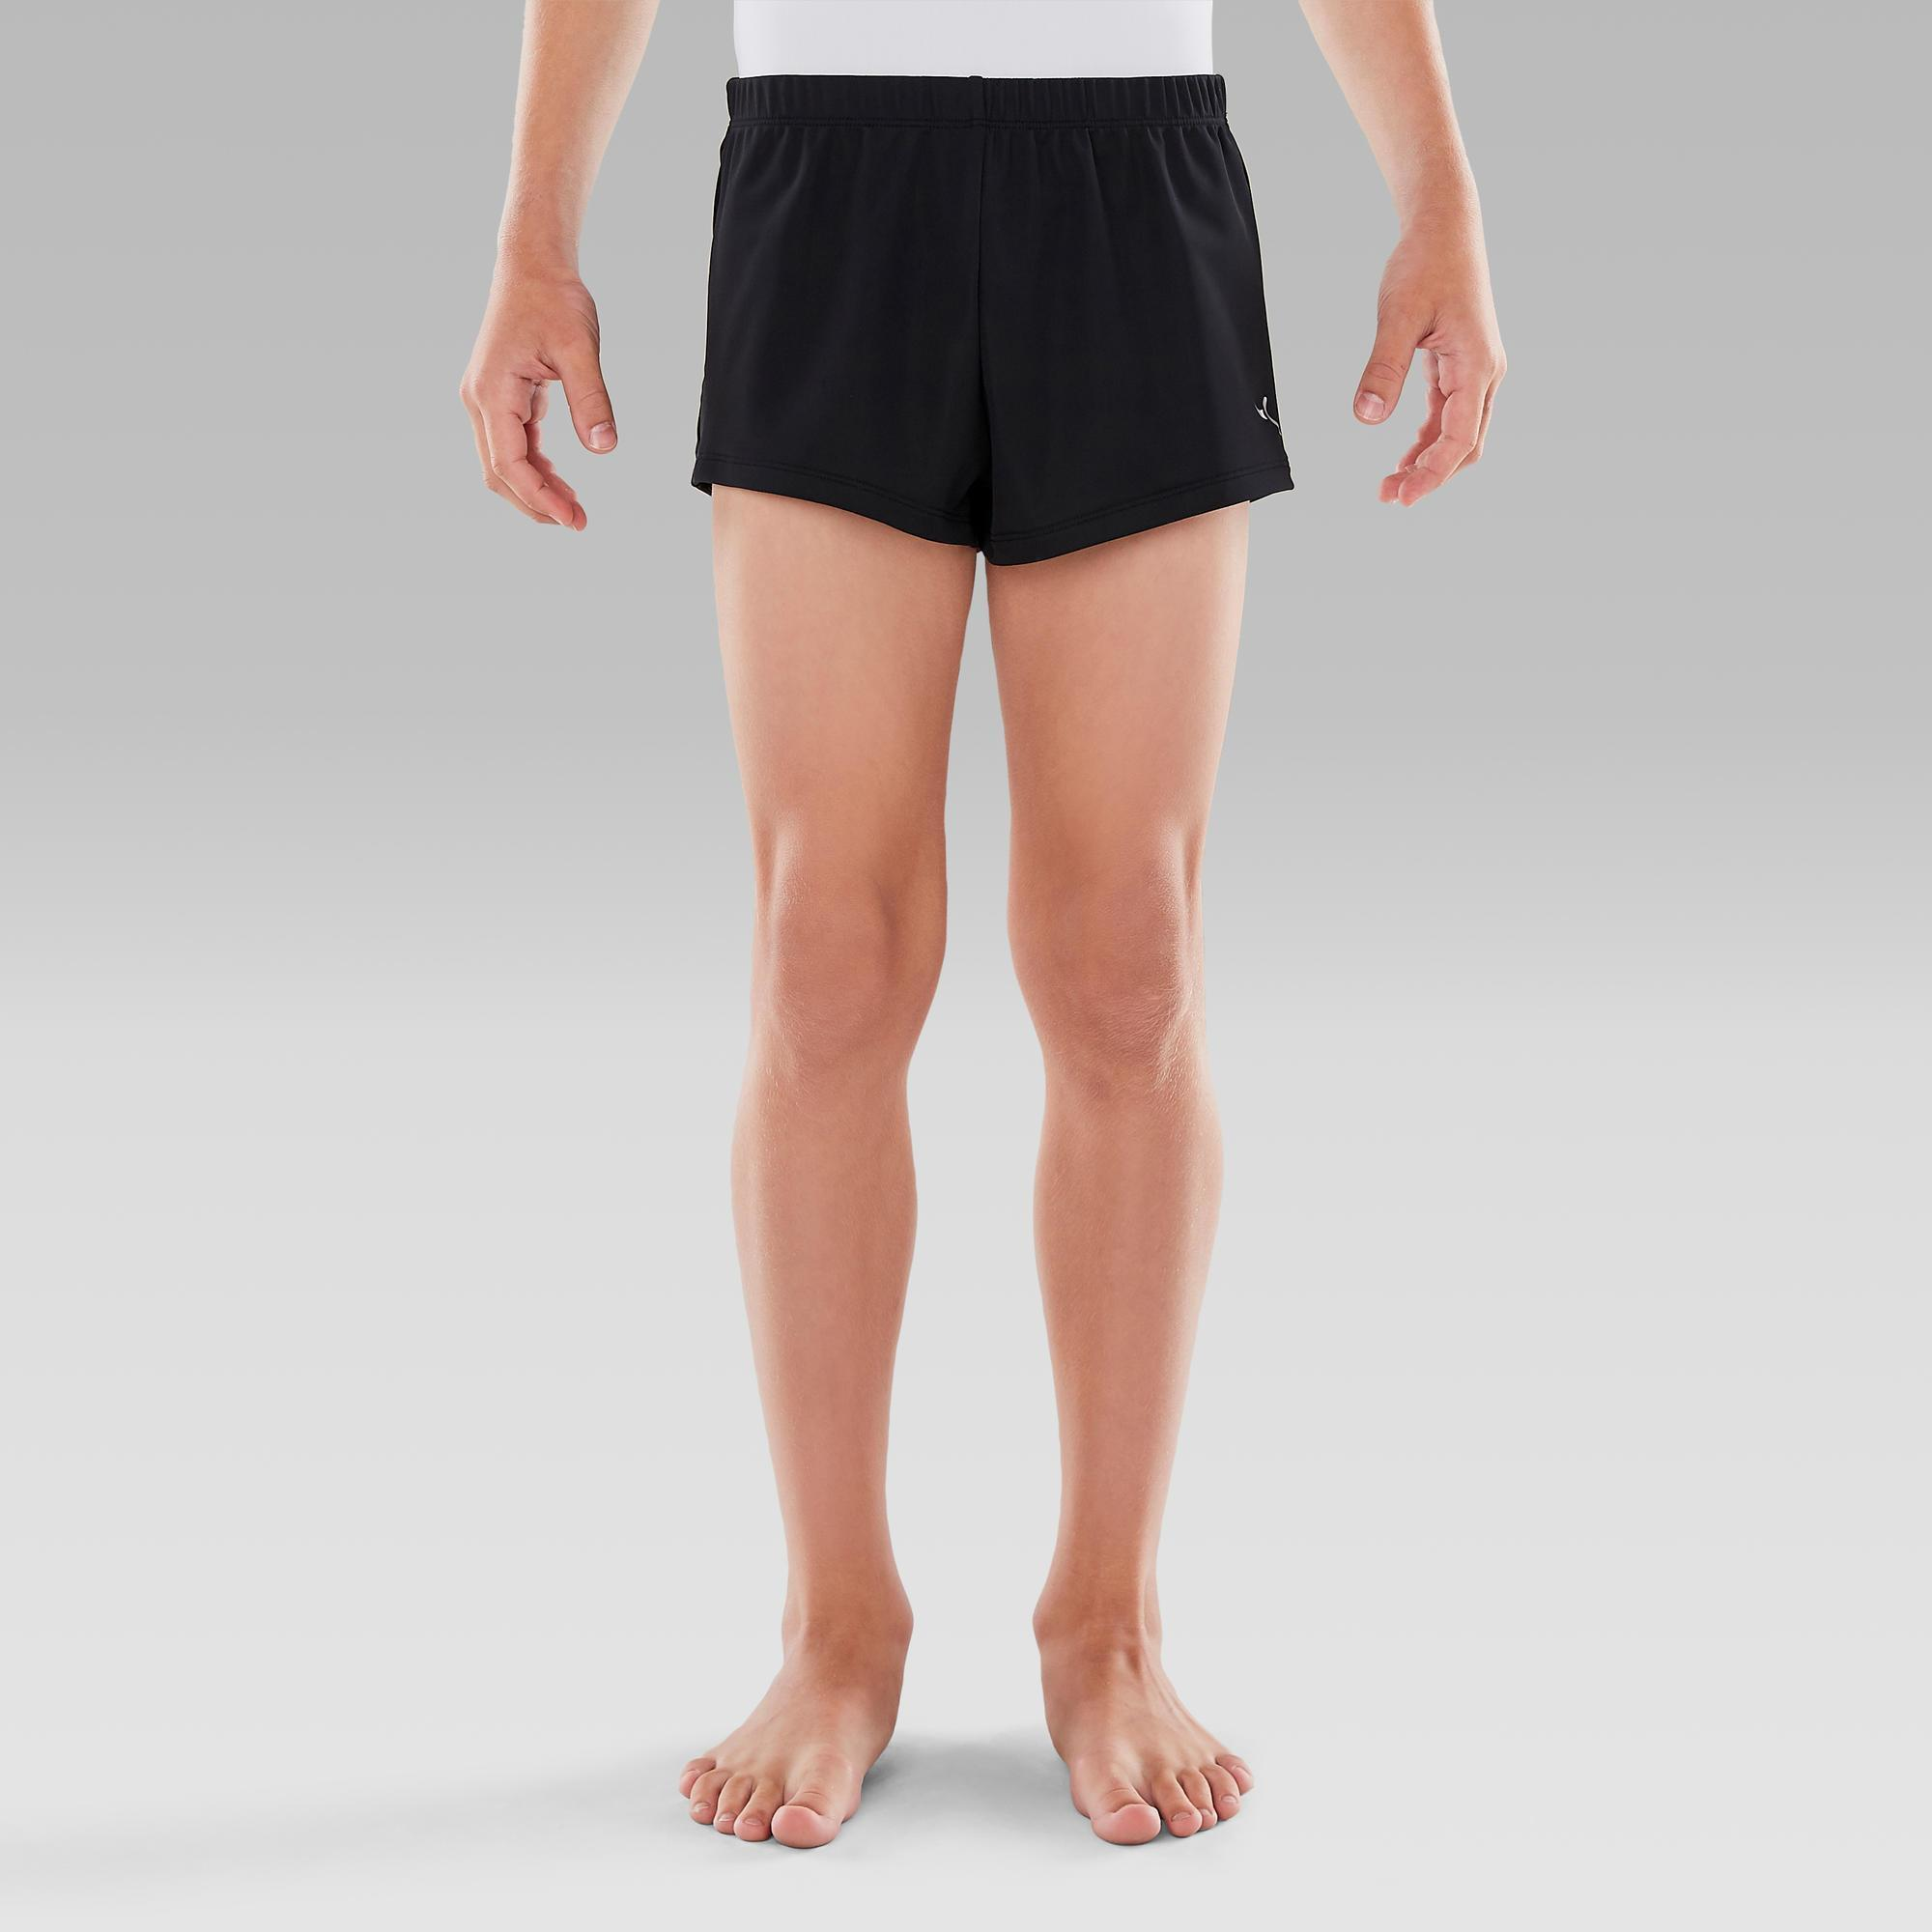 Boys' Artistic Gym Shorts (MAG) - Black | Domyos by Decathlon